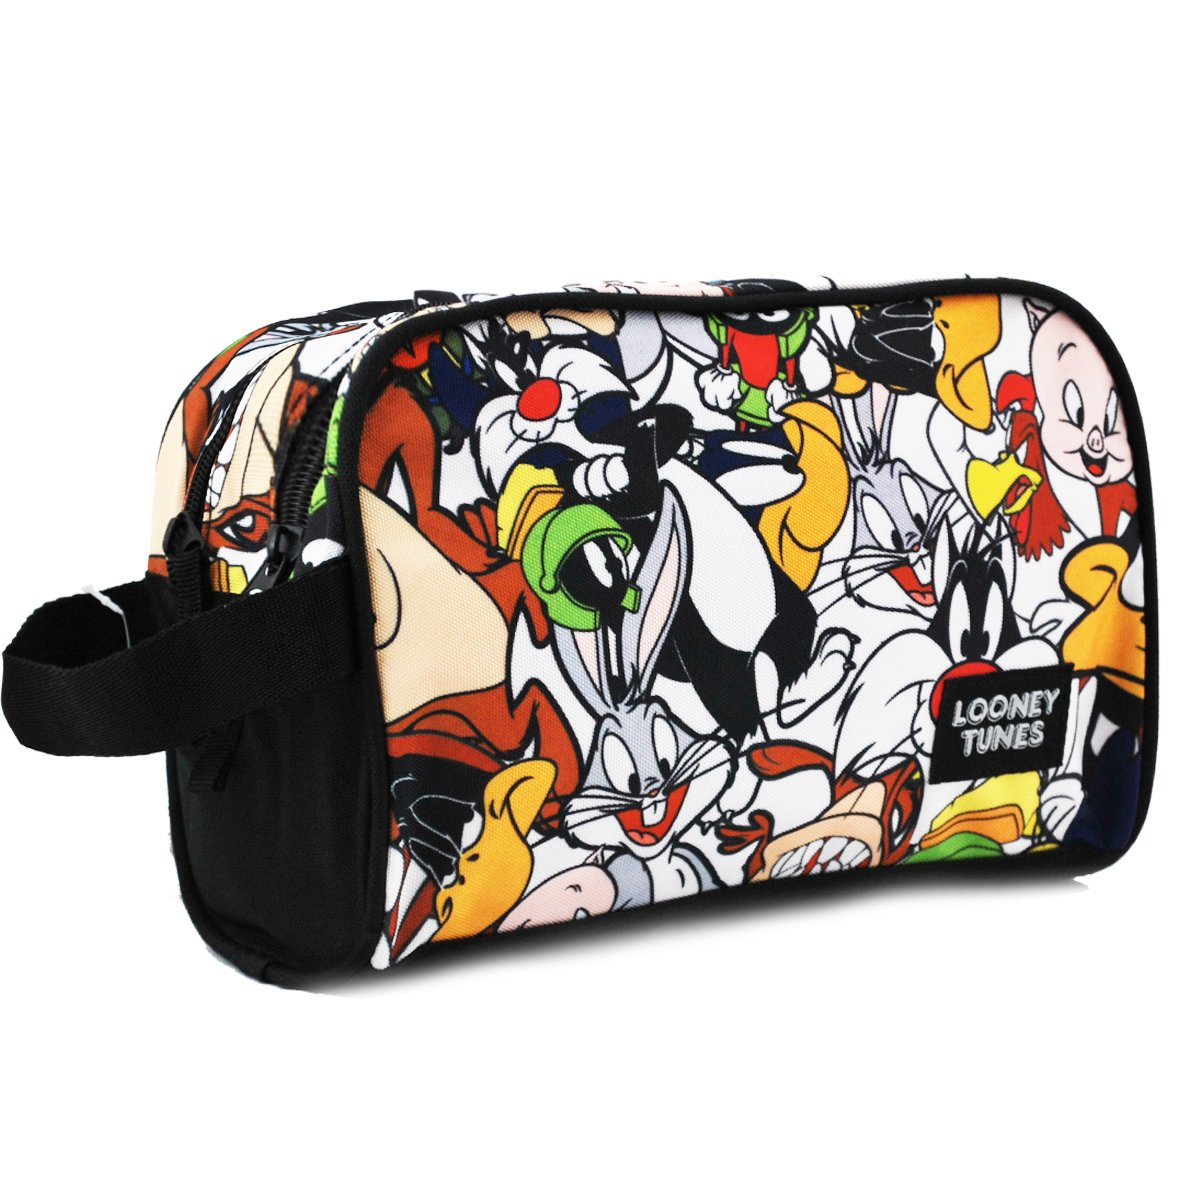 Trousse de toilette 26cm LOONEY TUNES